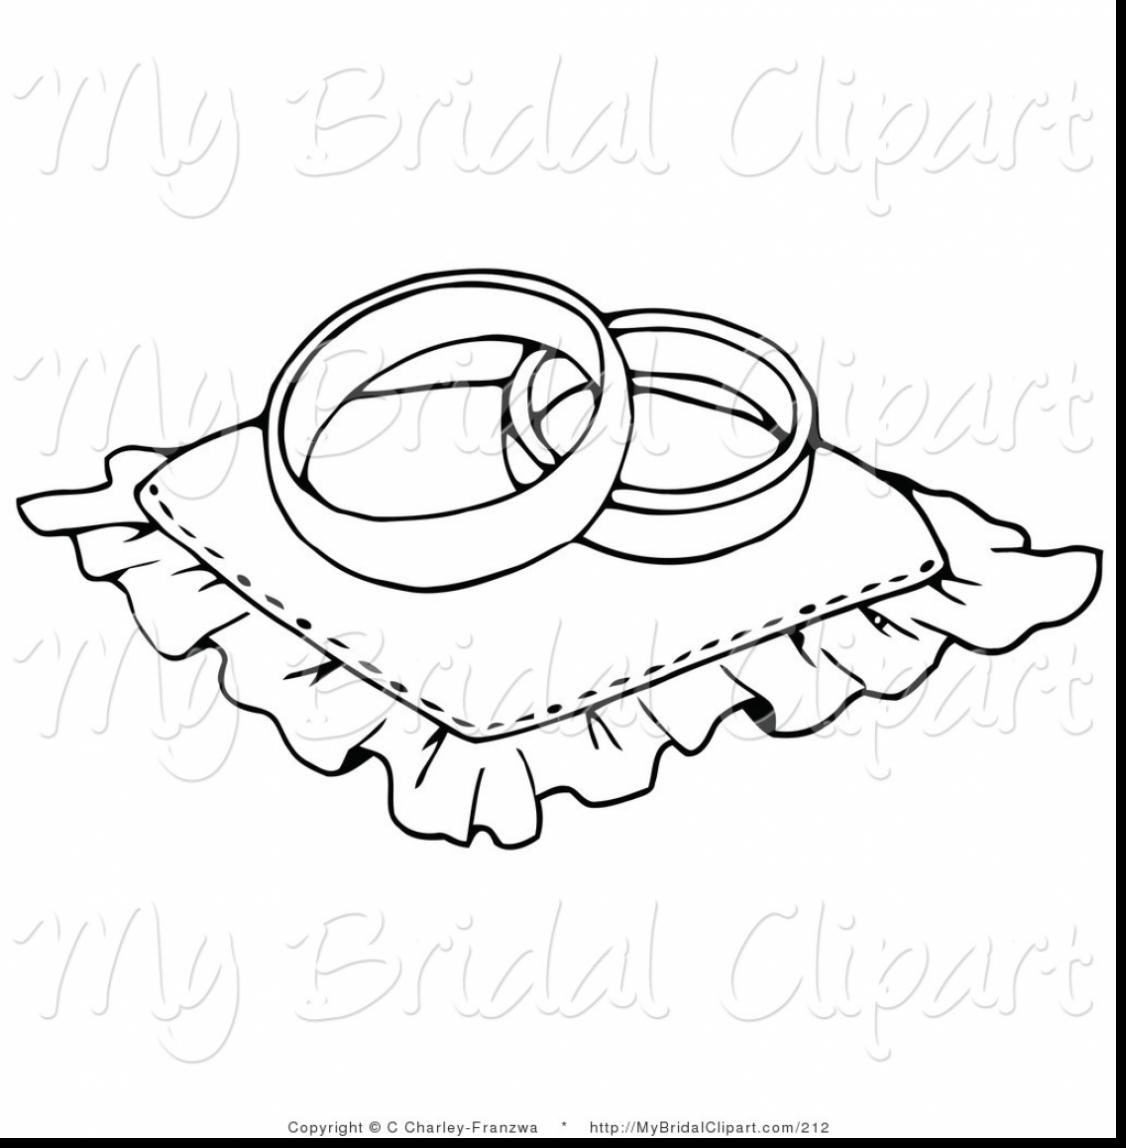 Wedding Bell Drawing At Getdrawings